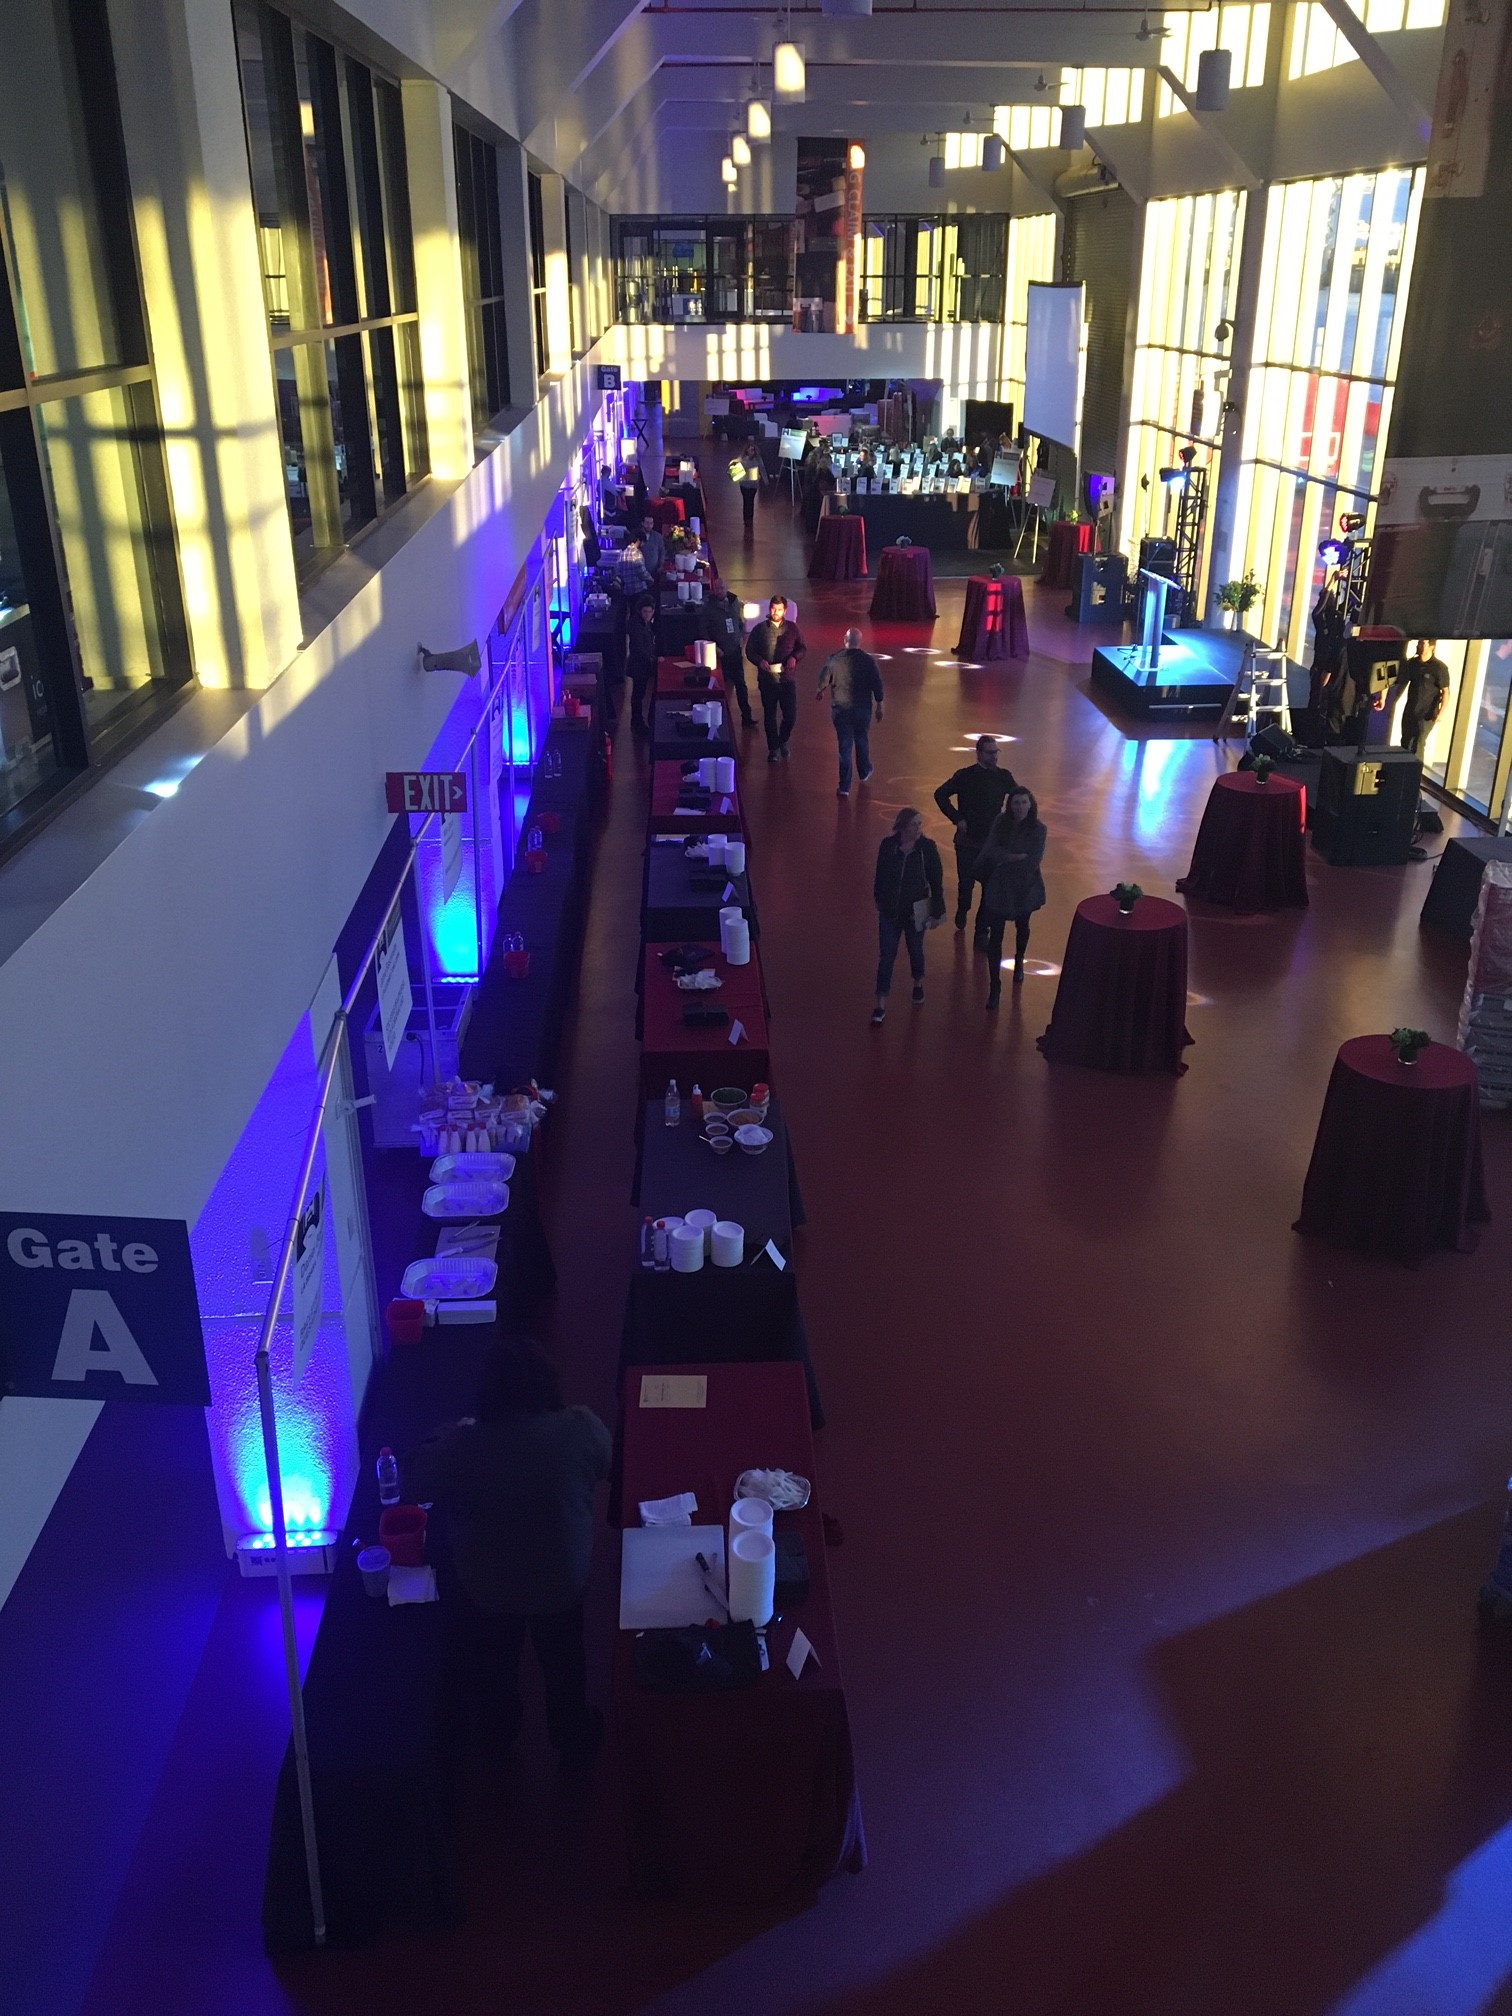 View of the first floor set up with booths and high top tables.